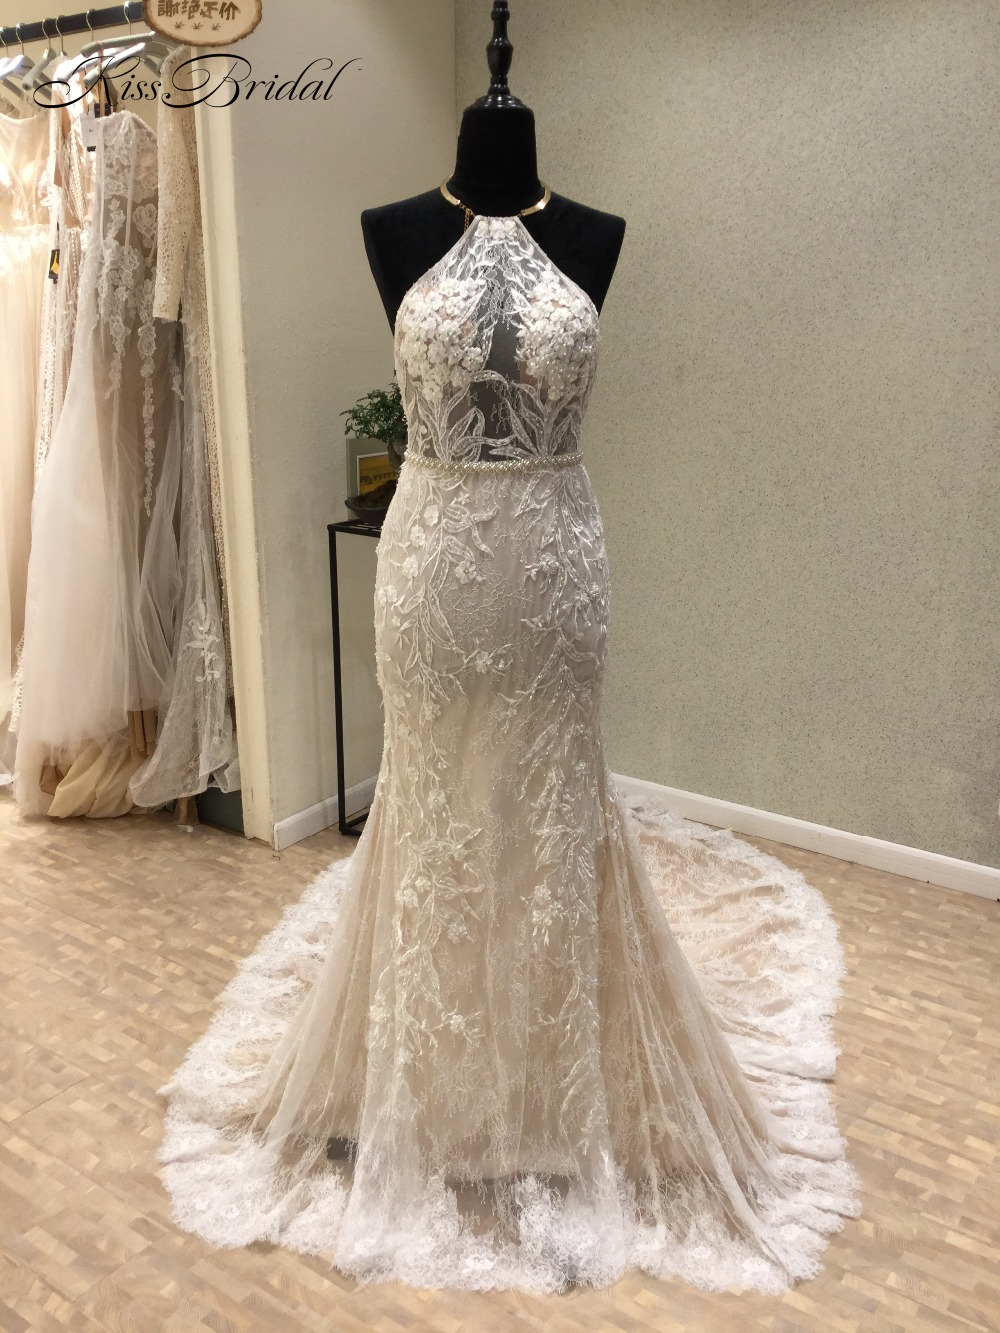 1baa3837fdd New Sexy Beach Wedding Dresses 2018 O-Neck Off the Shoulder Court Train  Appliques Tulle Backless Bridal Gowns Vestido de noiva